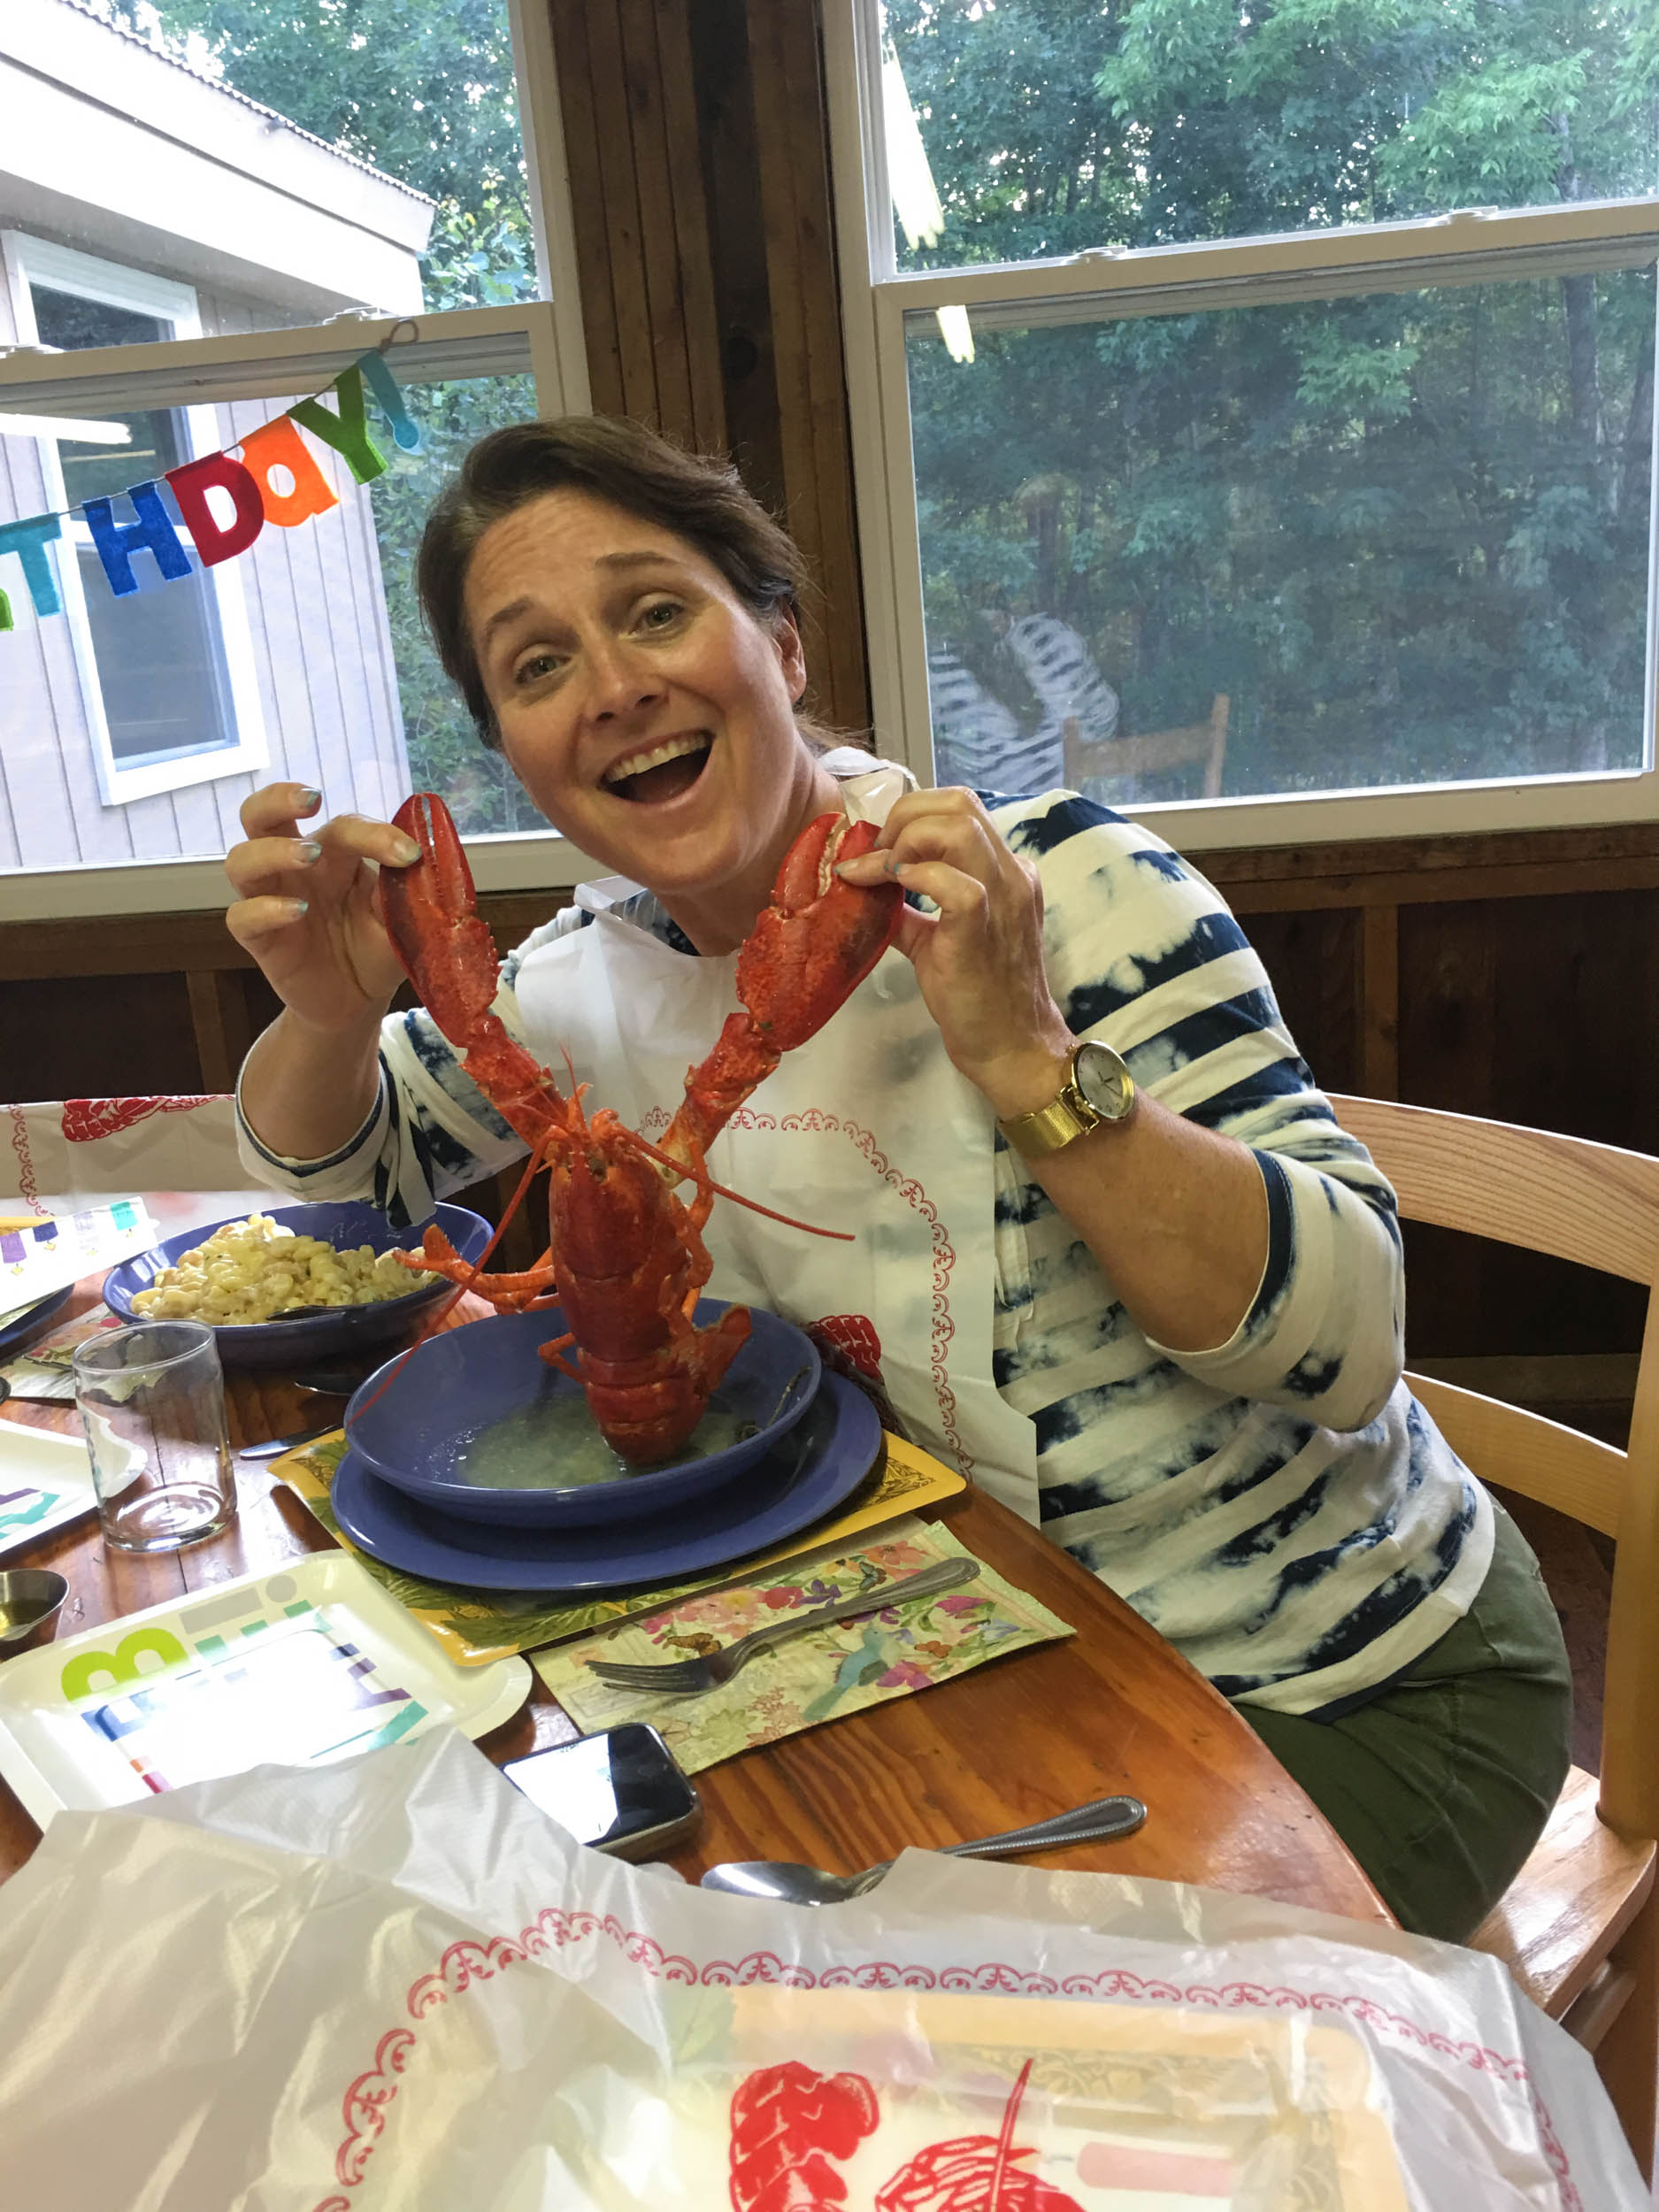 Leslie + Lobster (1 of 1).jpg